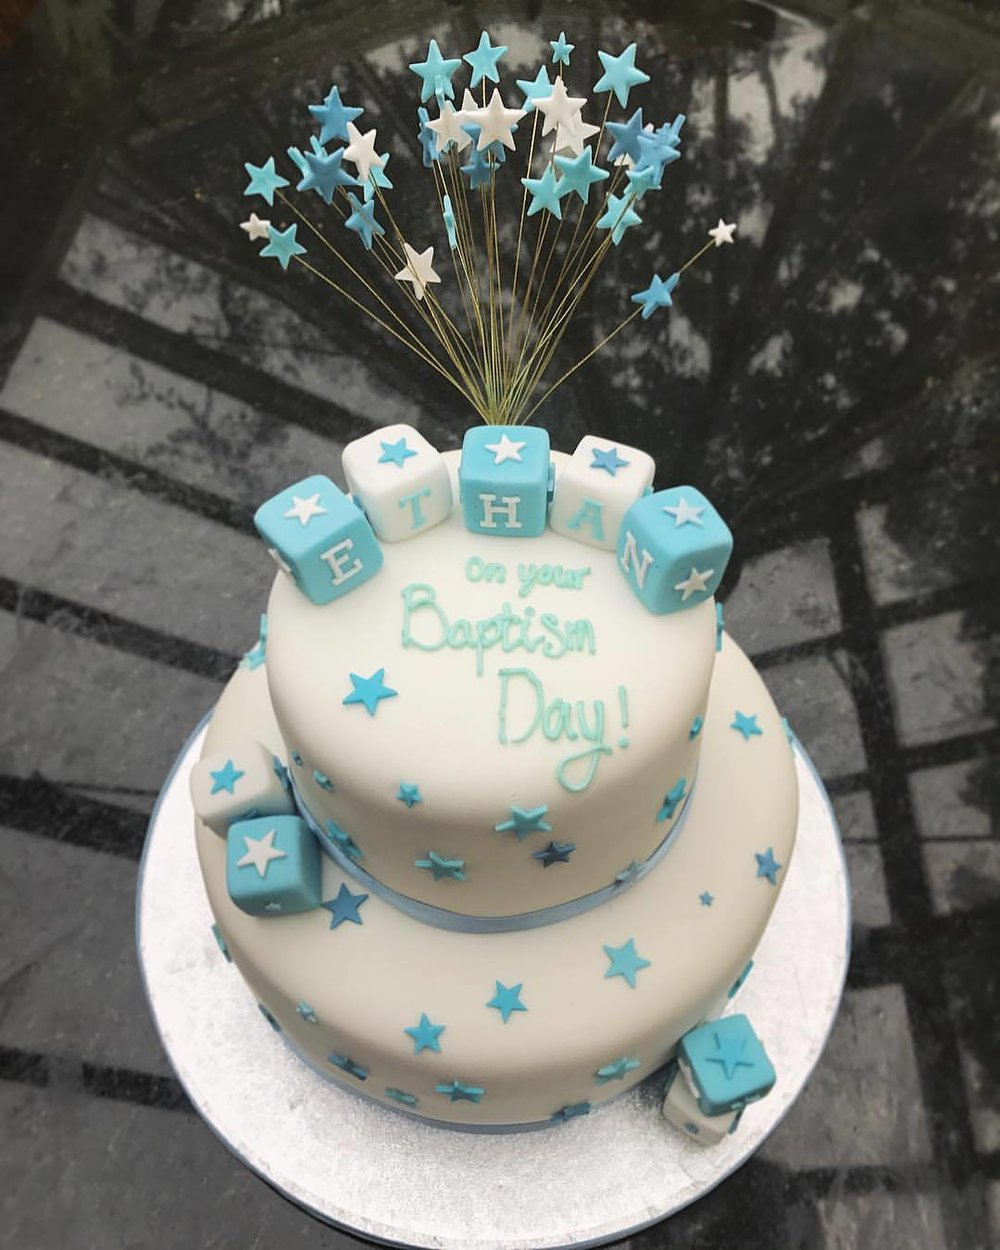 Baptism Cake With Letter Blocks & Starburst.